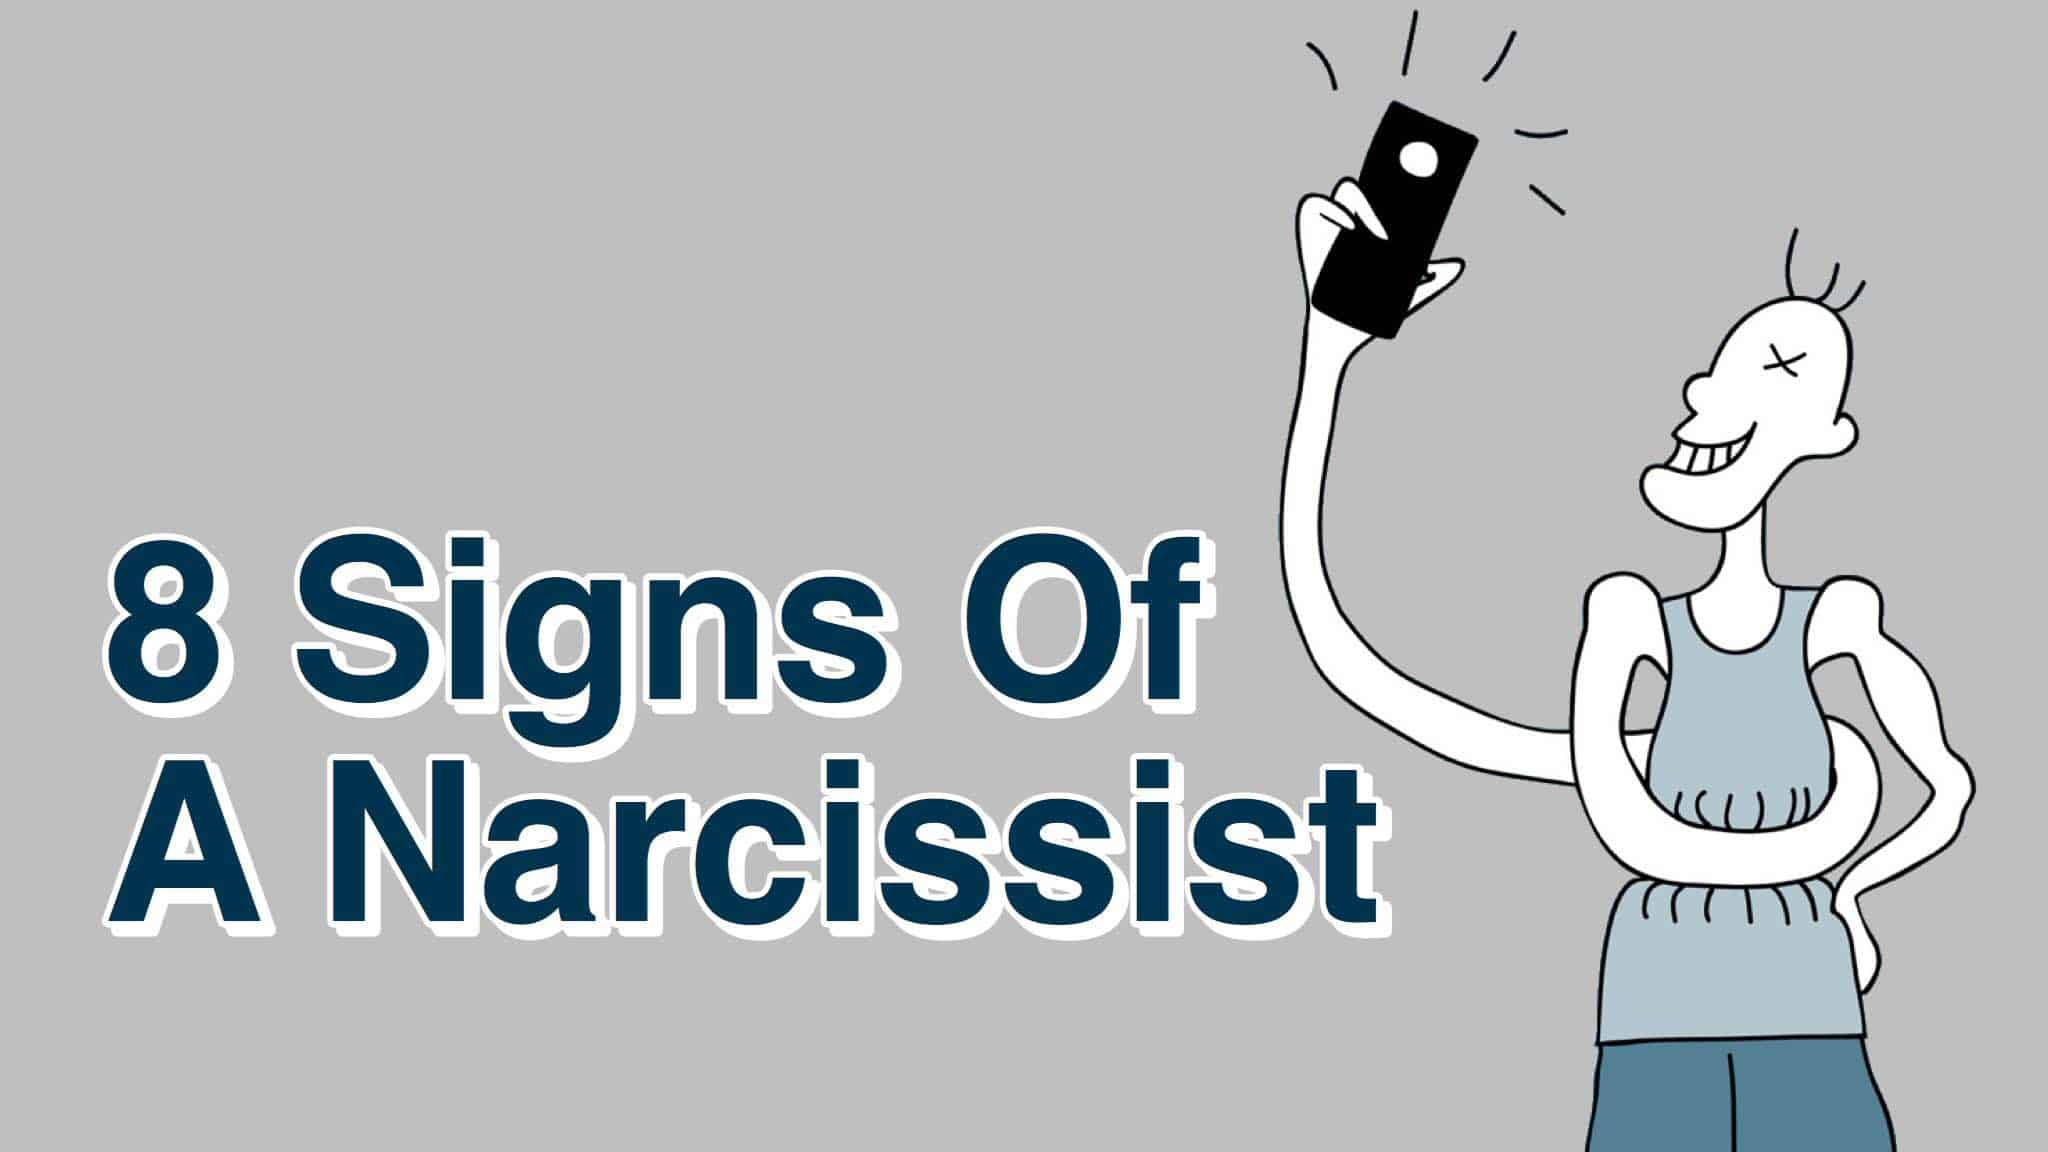 dating a narcissistic person But if you're wondering if the guy you're dating might be a narcissist,  narcissist, narcissism, narcissistic personality disorder, dating, toxic relationship.